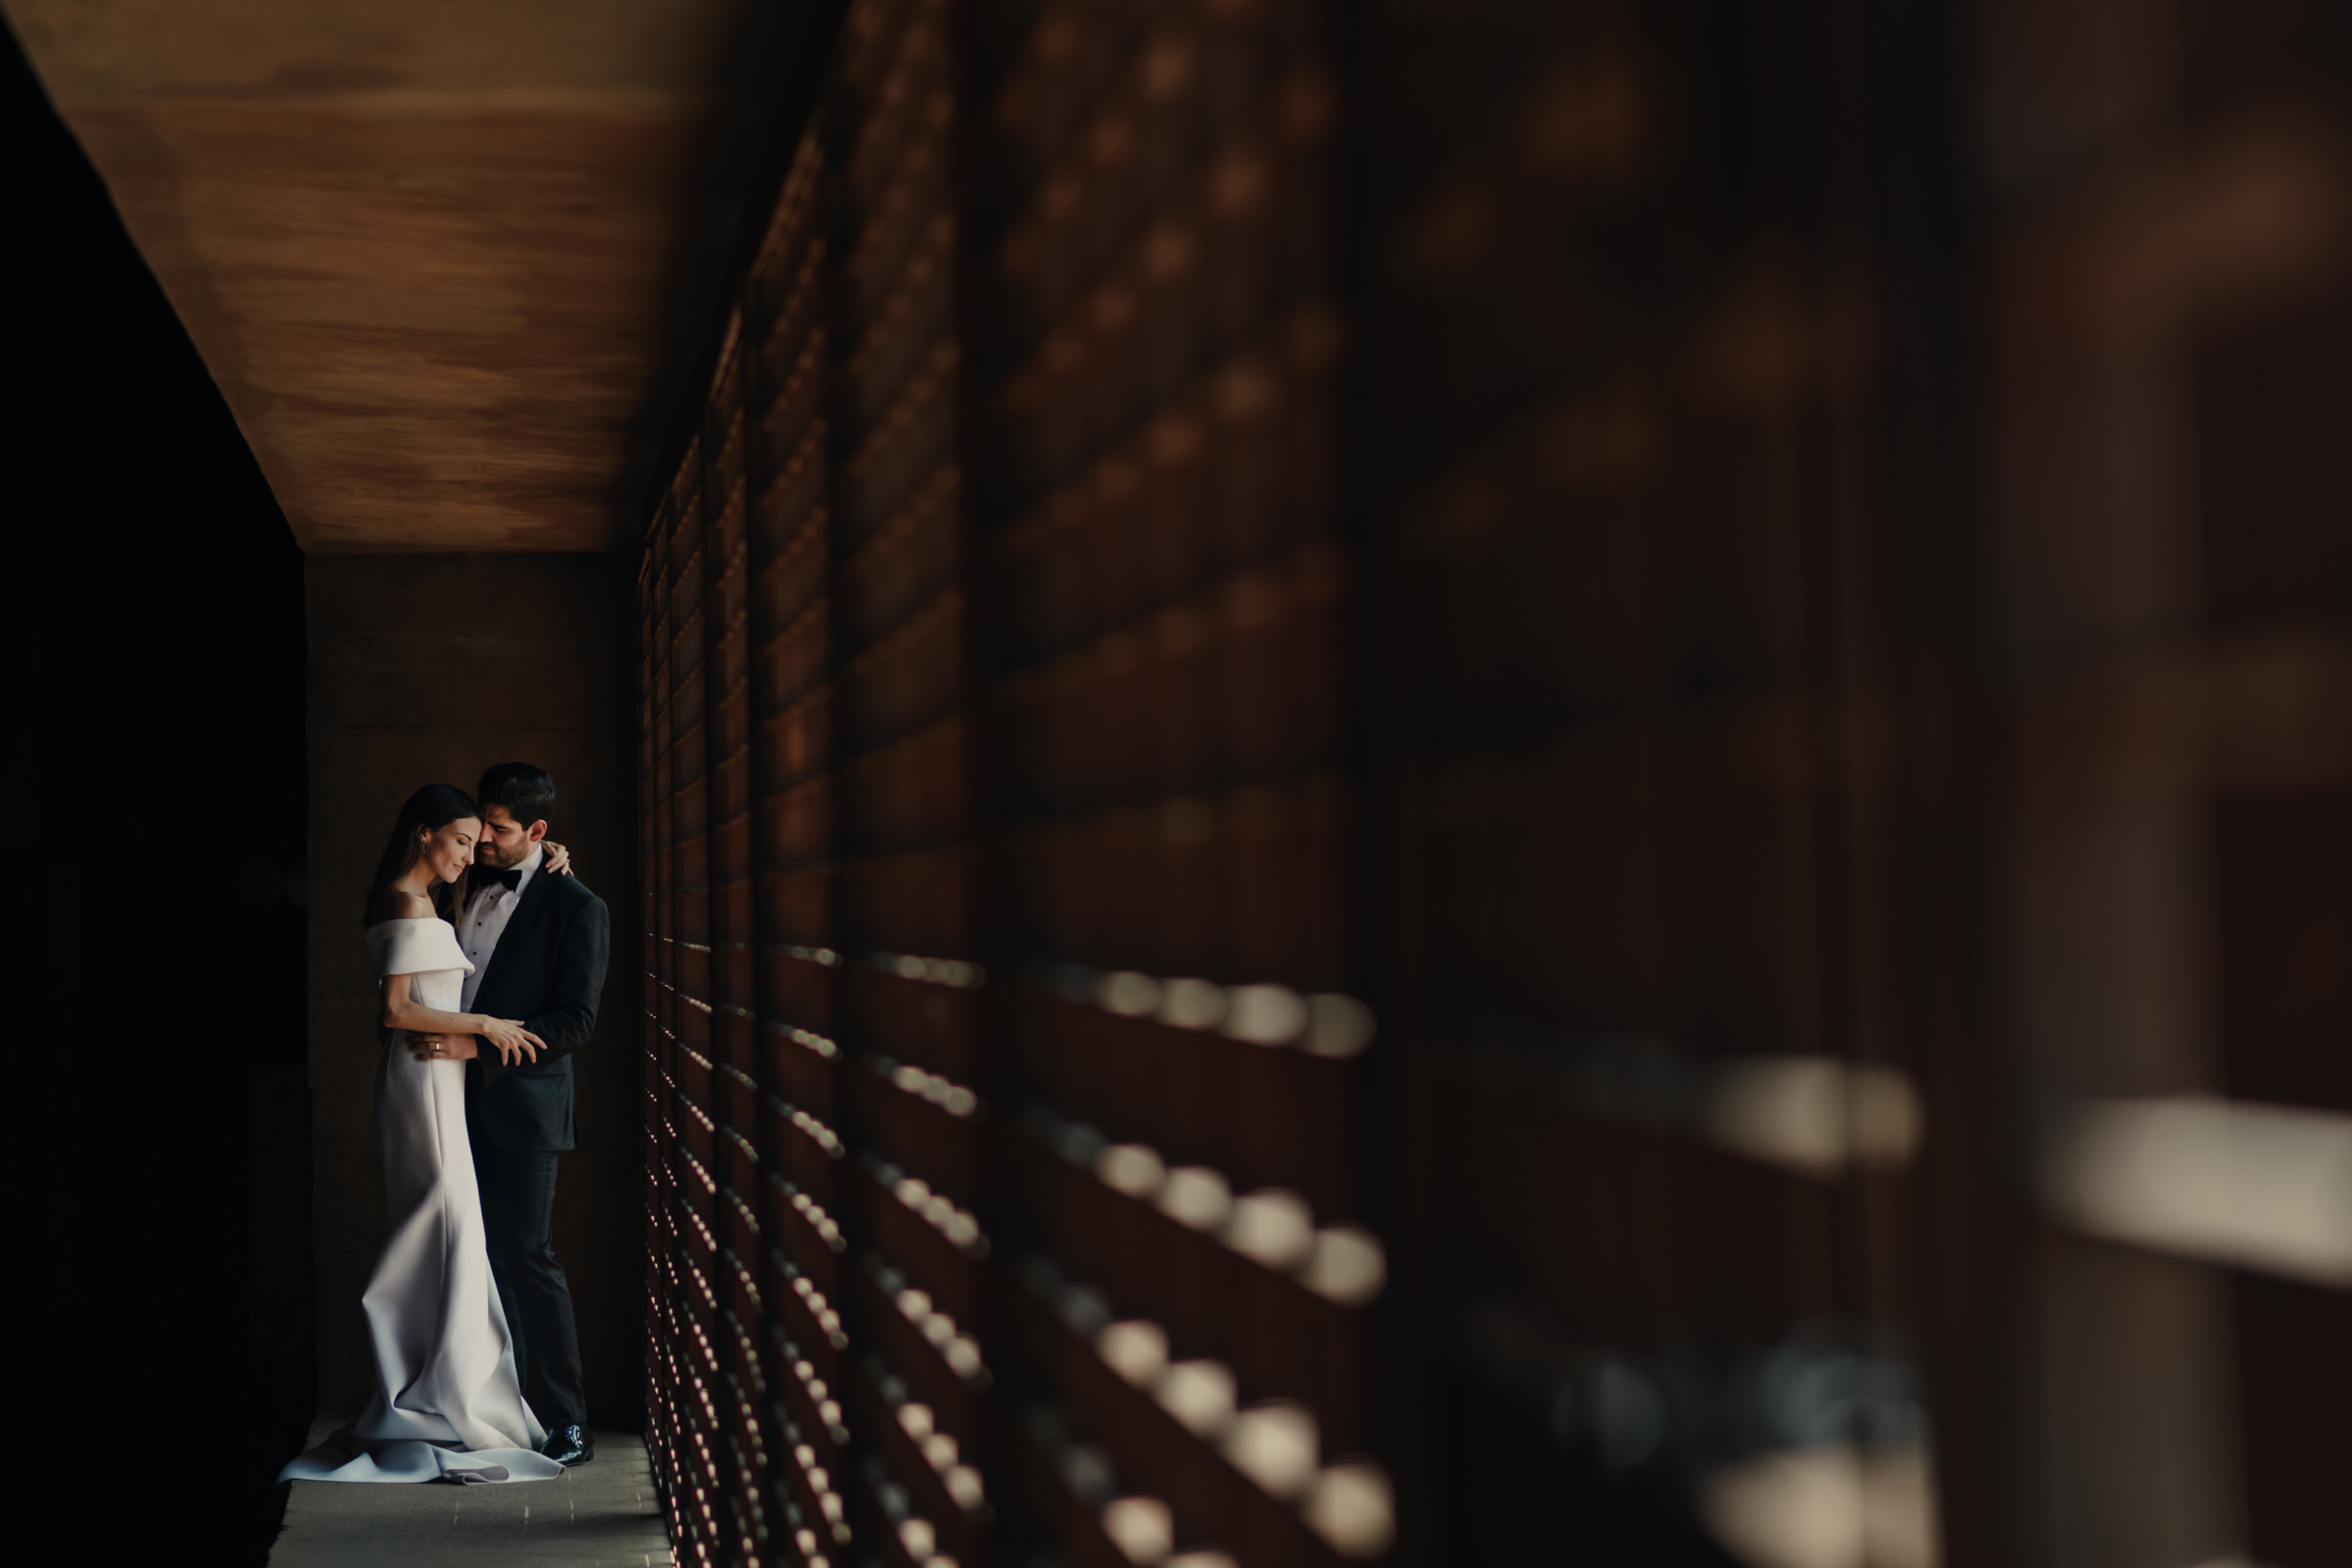 Bride and groom in hallway with slatted wall, by Victor Marti, El Marco Rojo